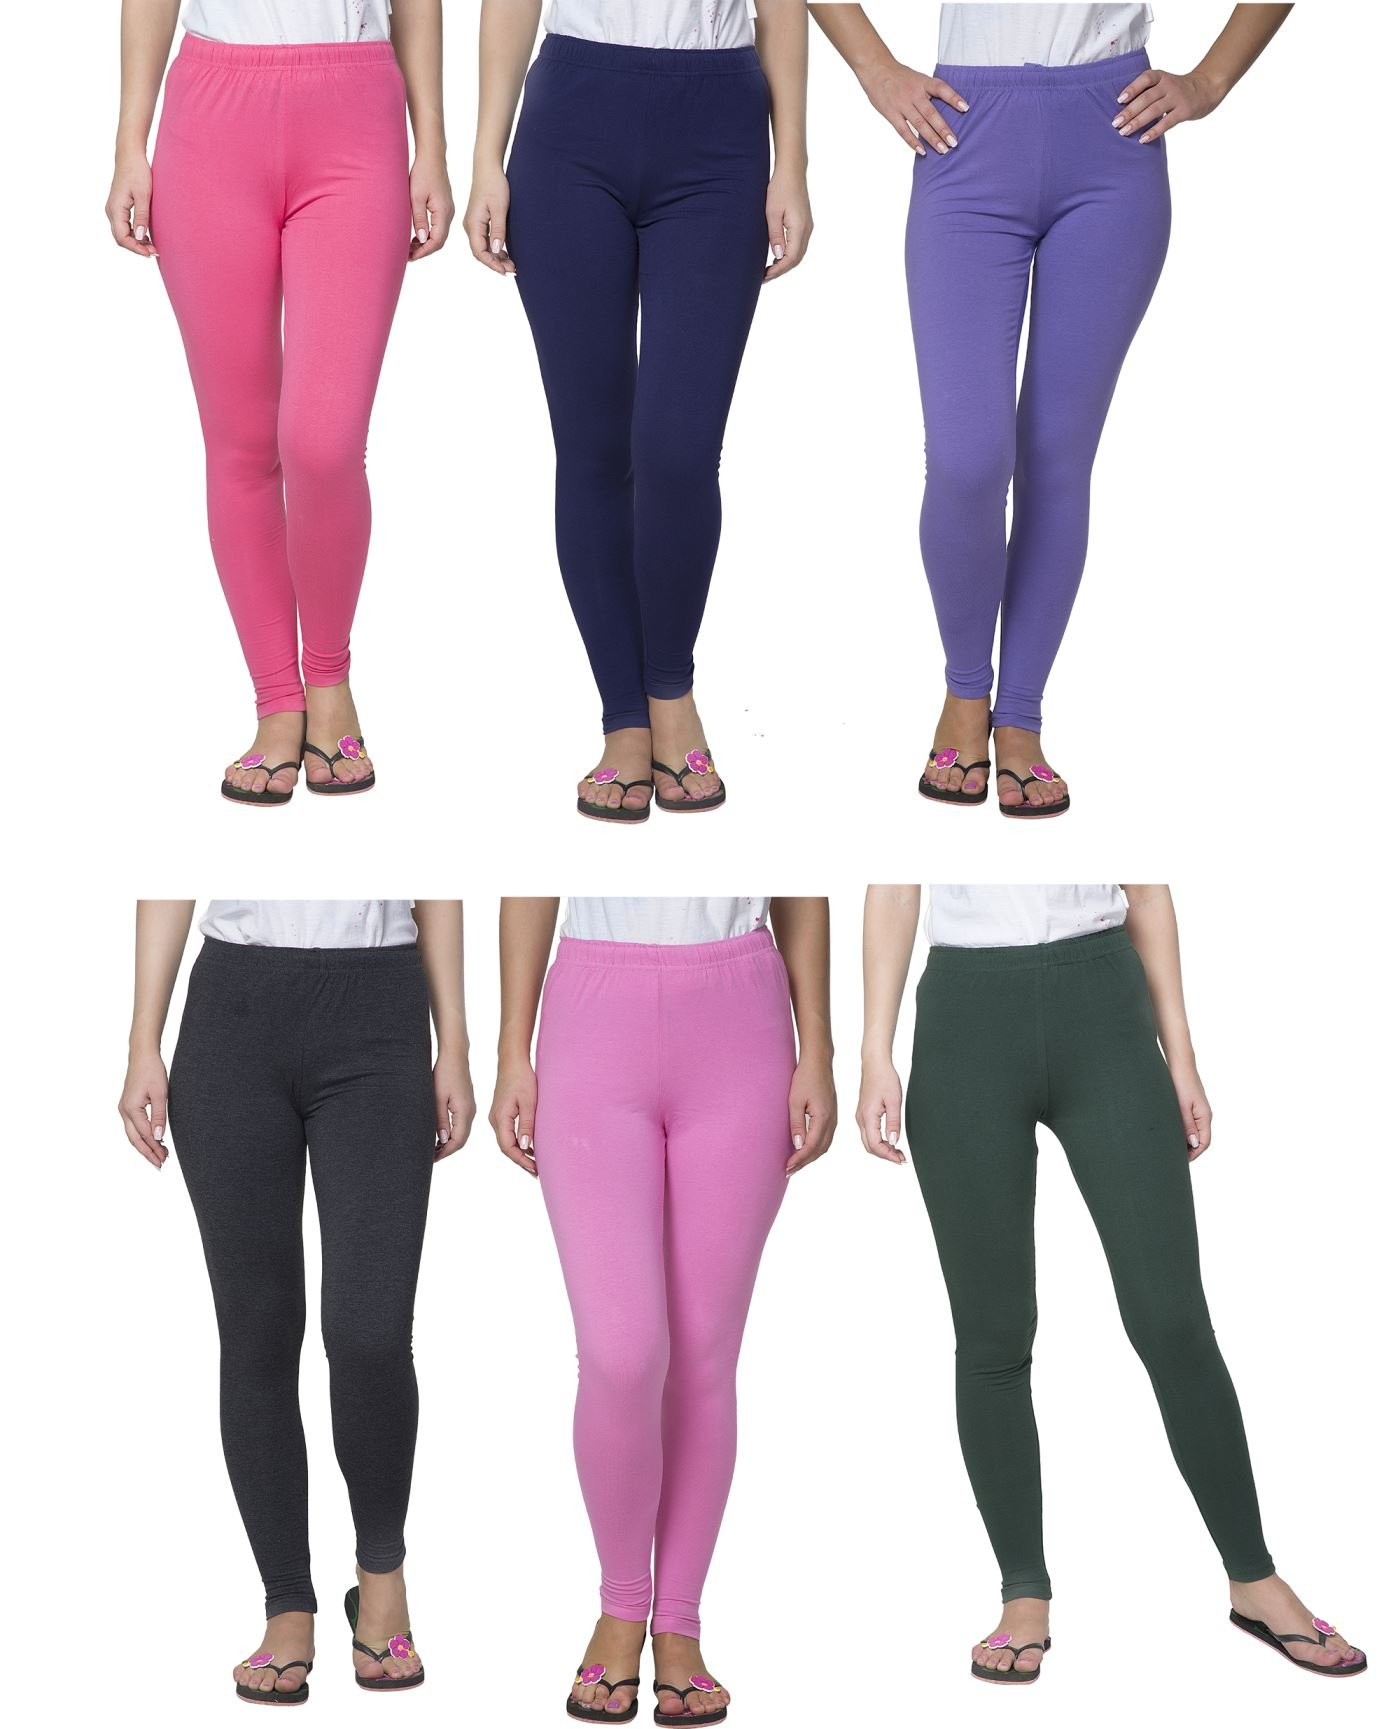 Clifton Women's Cotton Spandex Fine Jersey Leggings Pack Of 6-Assorted-2-5XL